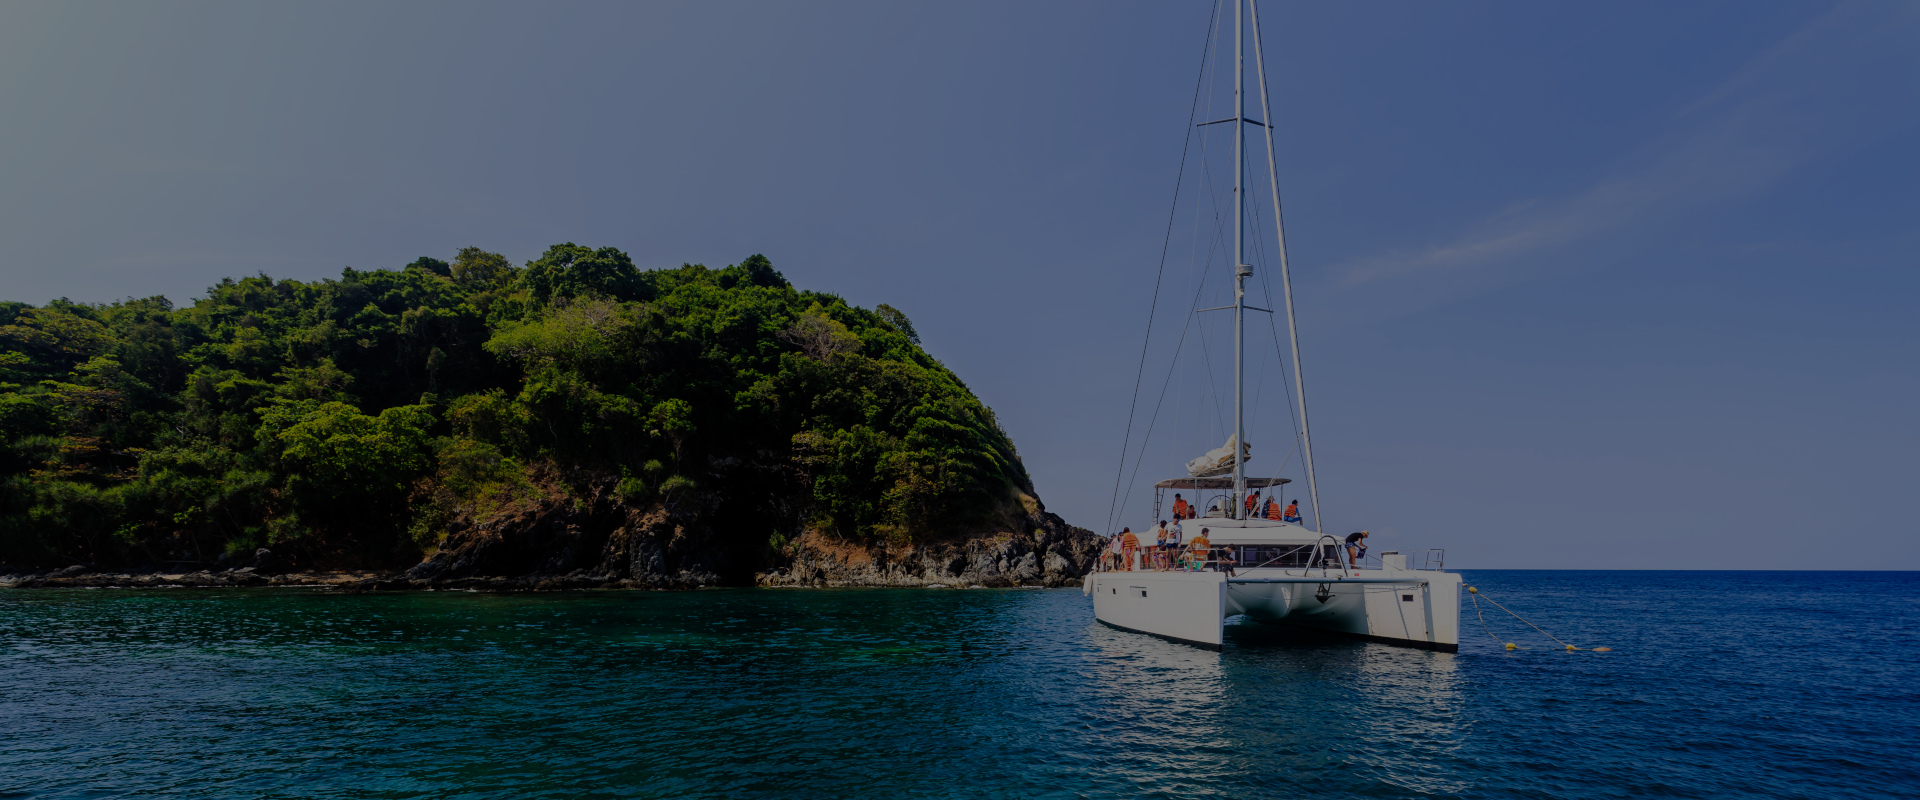 Yacht charter holidays in Croatia with Secret Adriatic